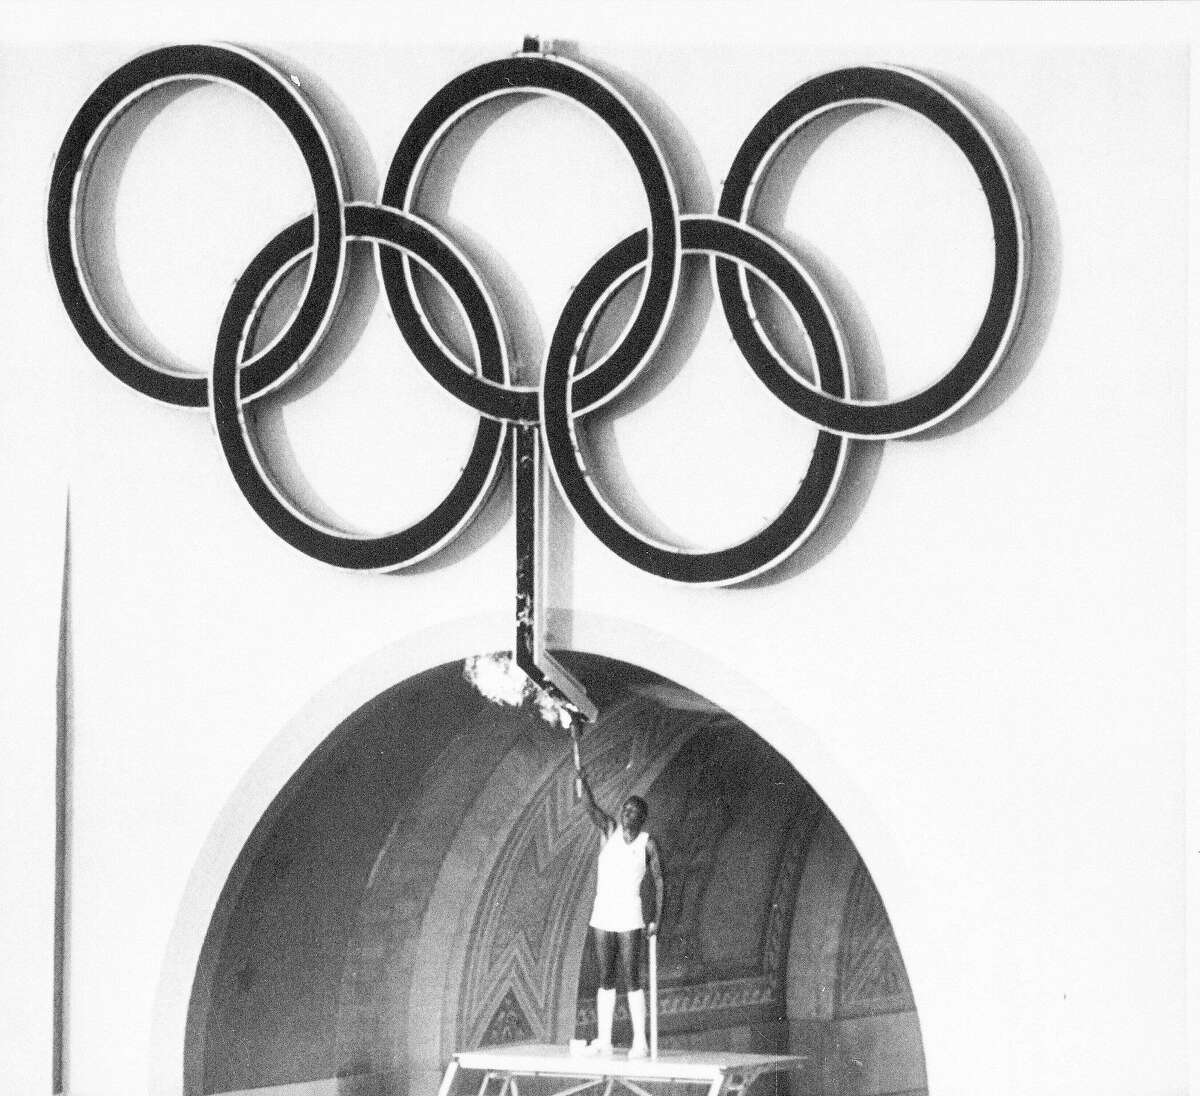 In this July 28, 1984, file photo, Rafer Johnson, winner of the gold medal for the decathlon in 1960, lights the Olympic torch during opening ceremonies of the Olympic Games in Los Angeles.